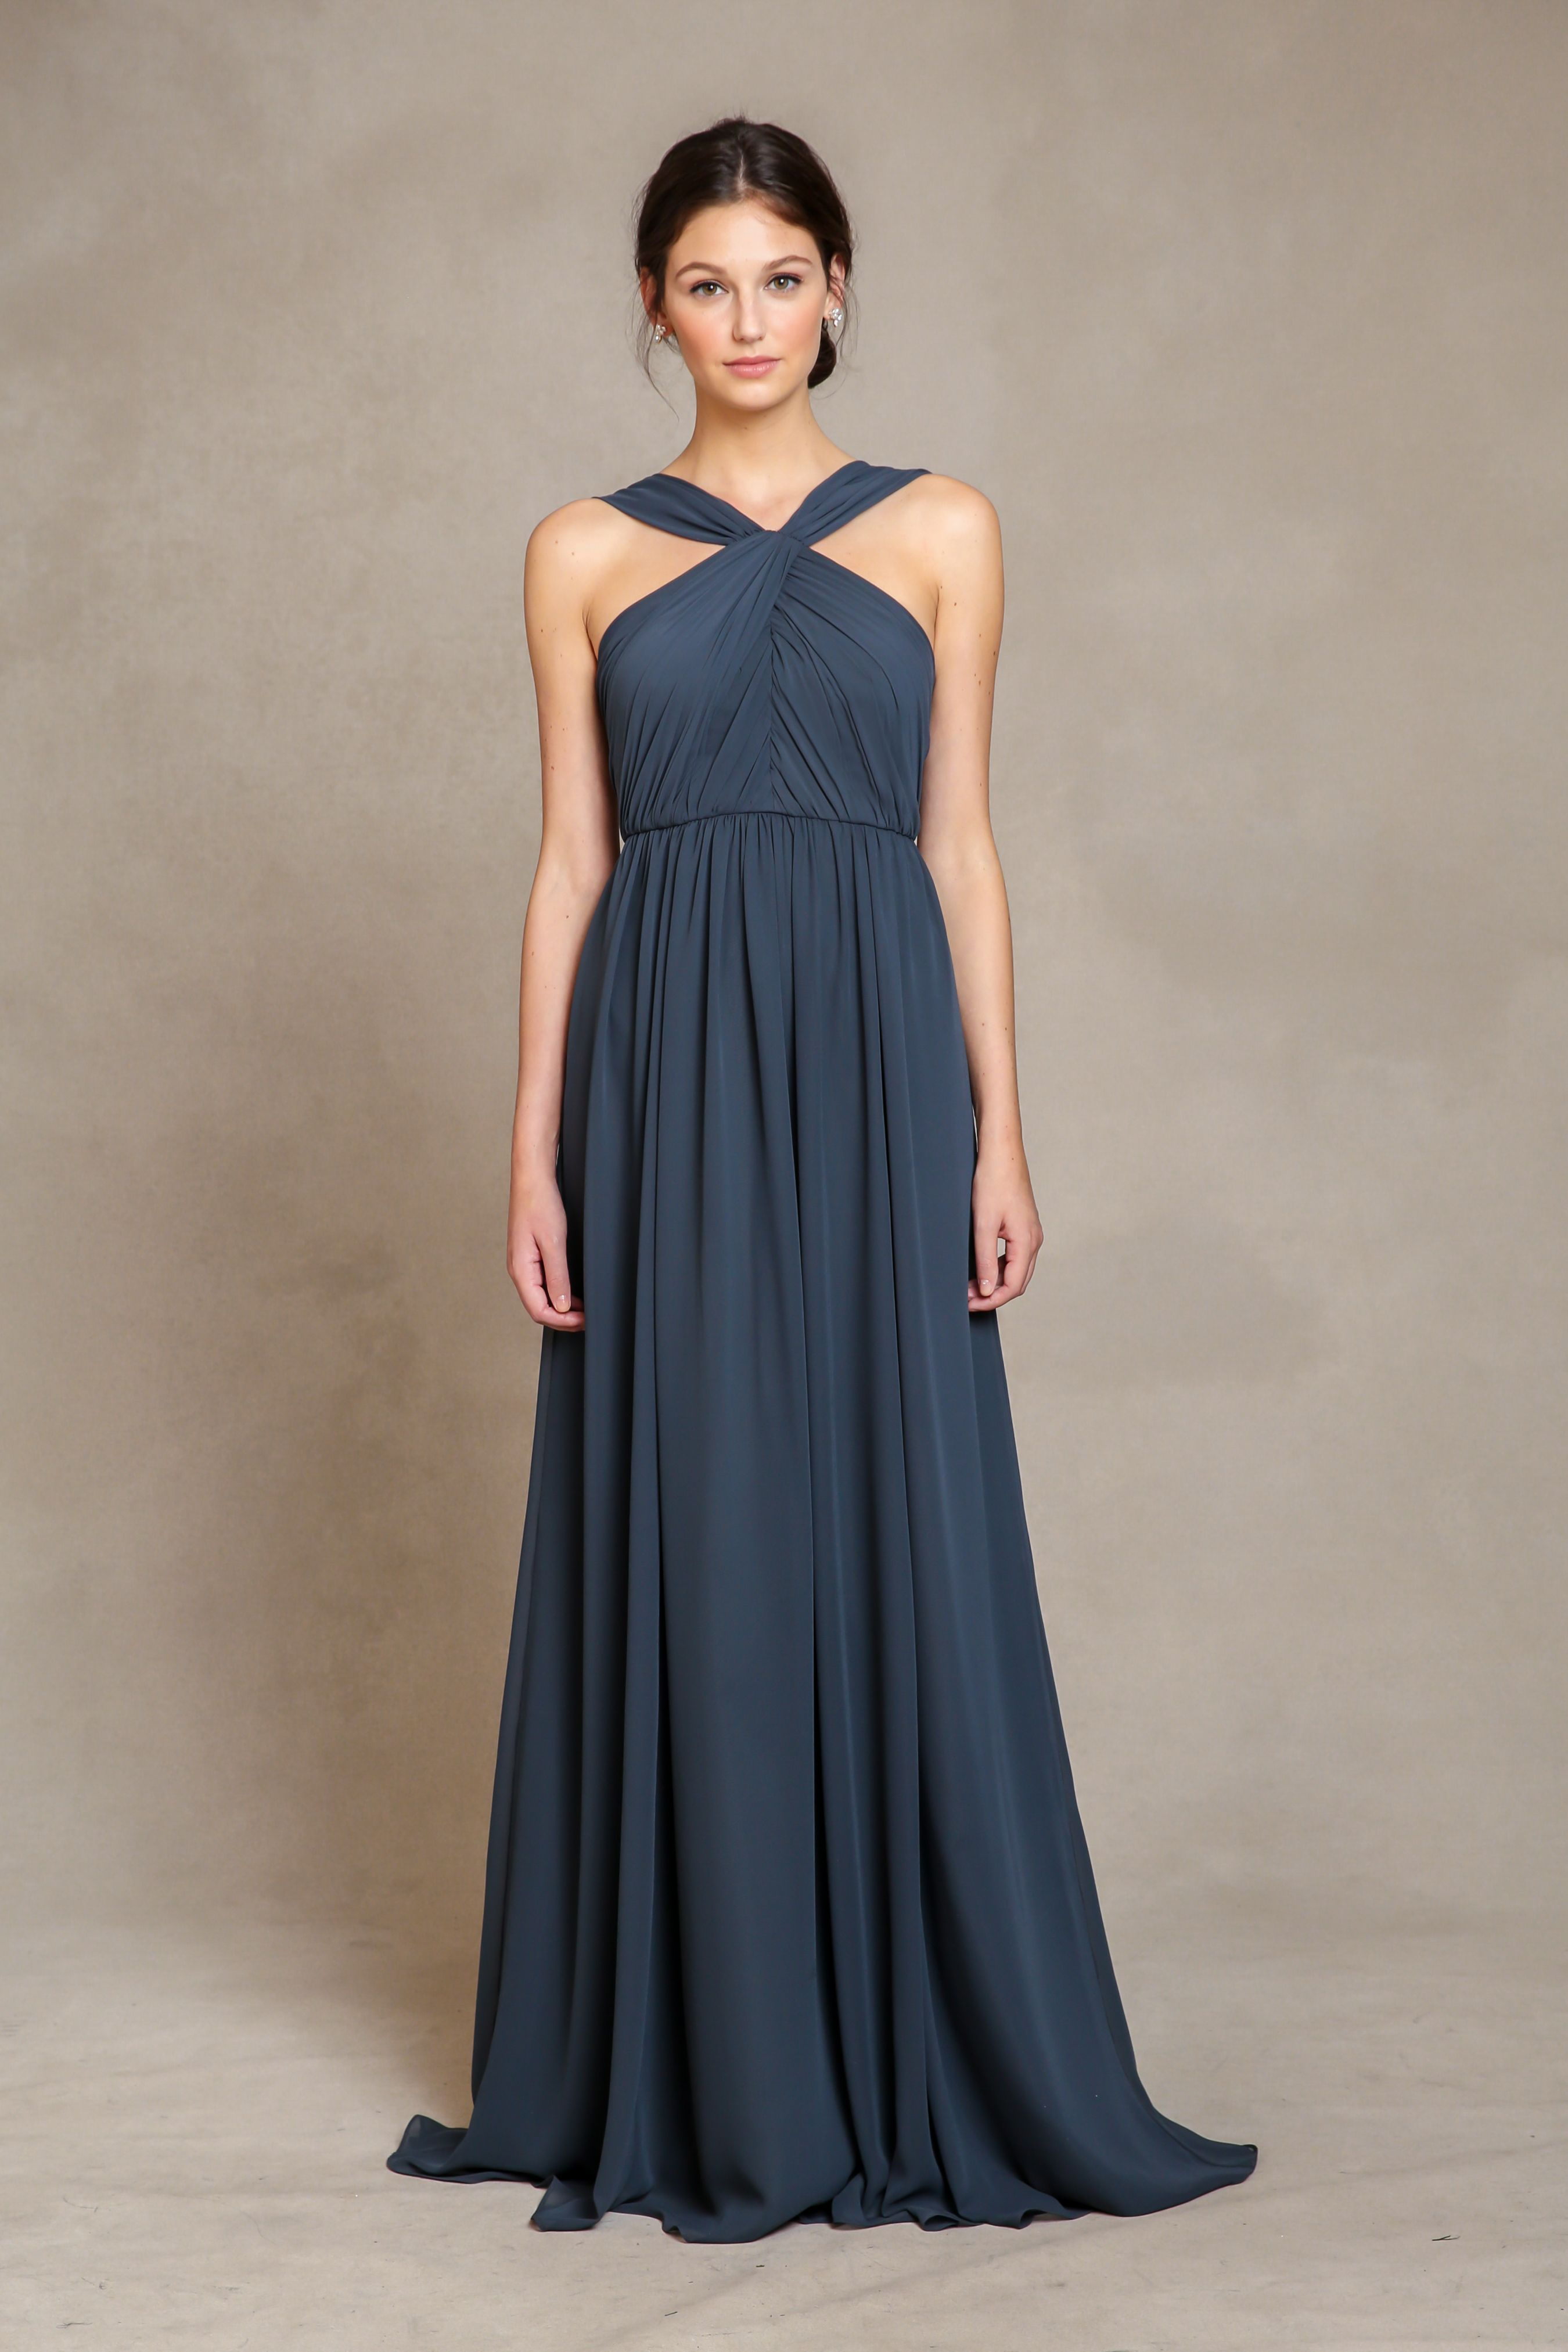 03ac7b7c4966d JACQUELINE Jenny Yoo $280.00 The Jacqueline features a halter neckline with  a natural waistline. Skirt is A-line and is floor length.